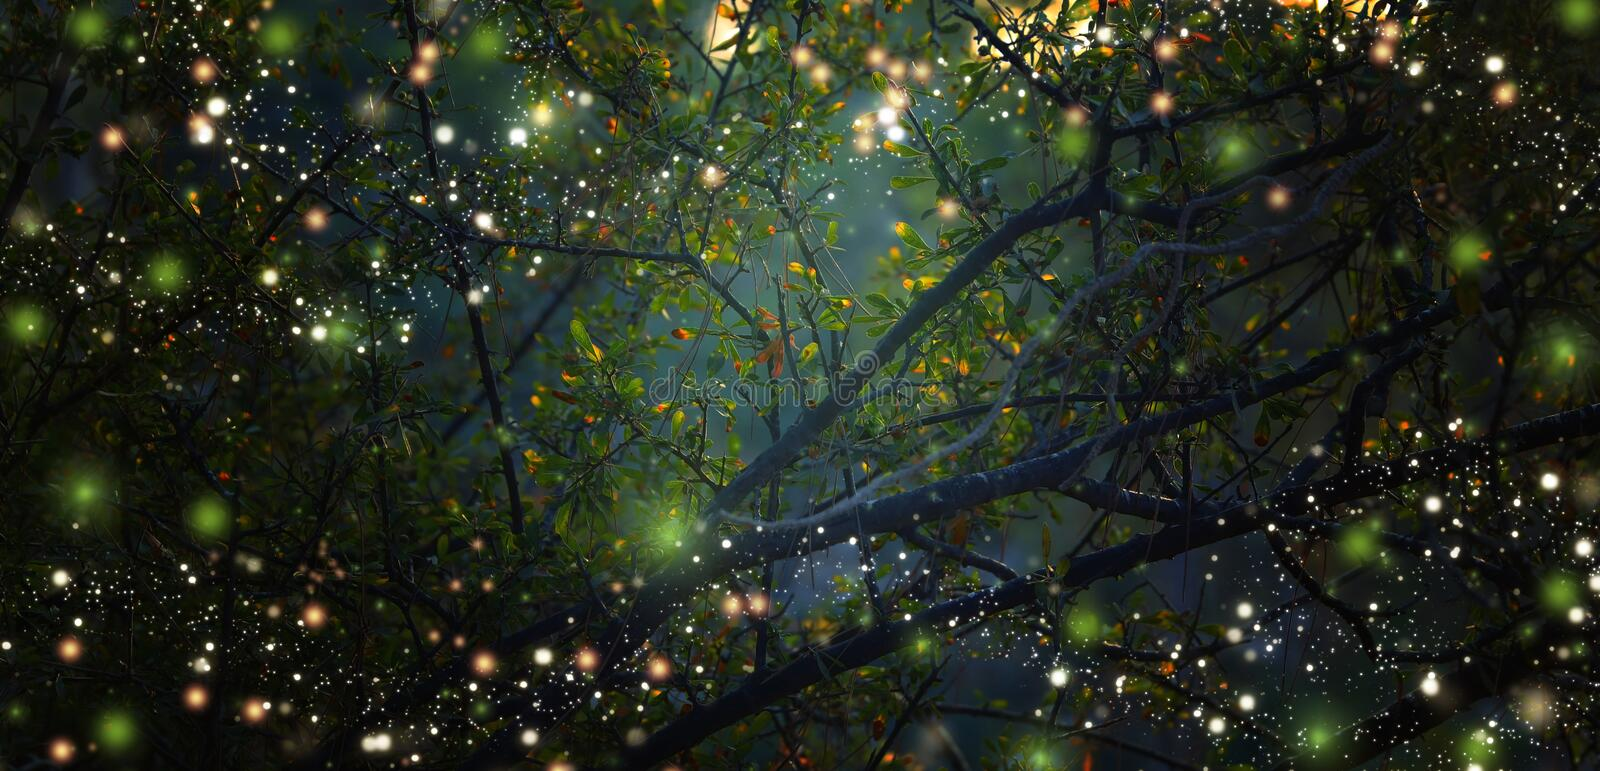 Abstract and magical image of Firefly flying in the night forest stock image